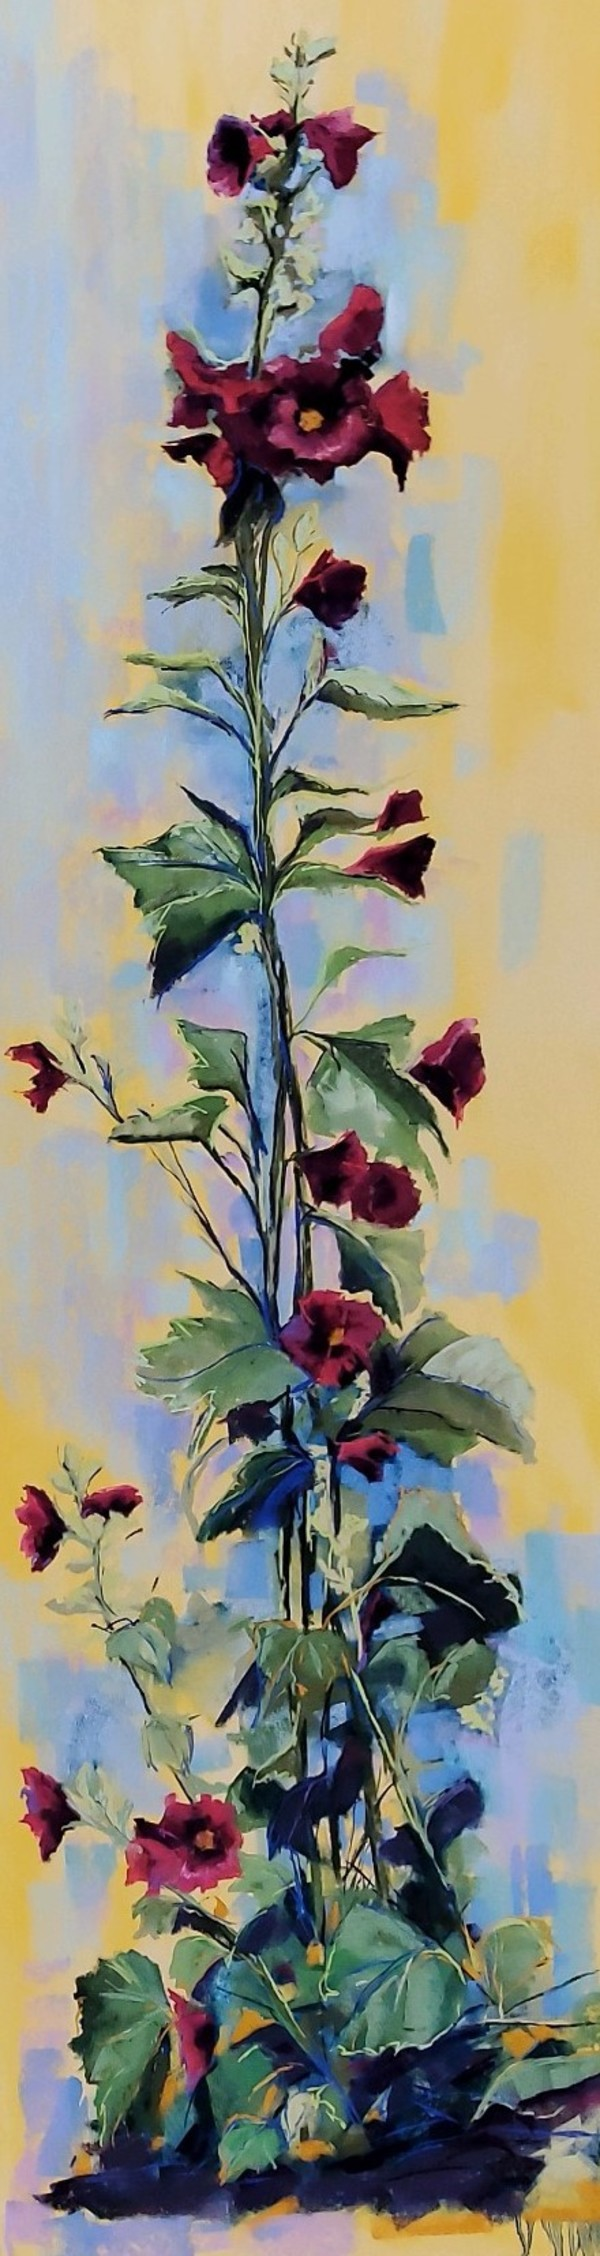 Hollyhocks by Renee Leopardi